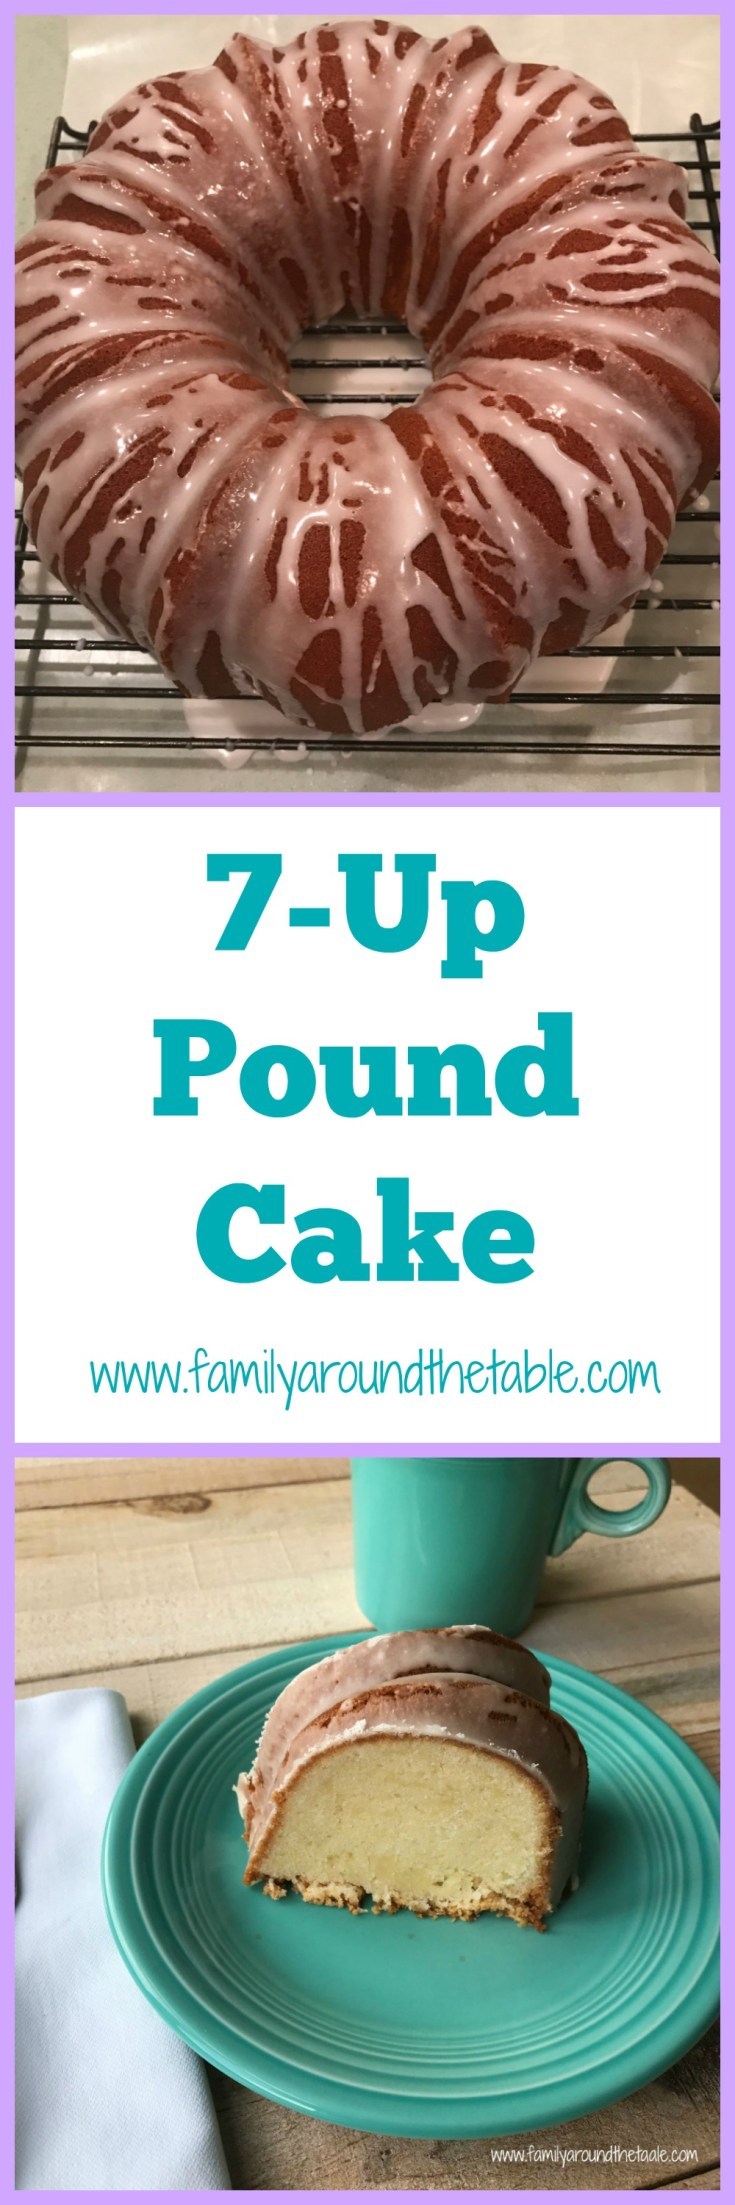 7-Up pound cake travels well, making it perfect for a potluck party.